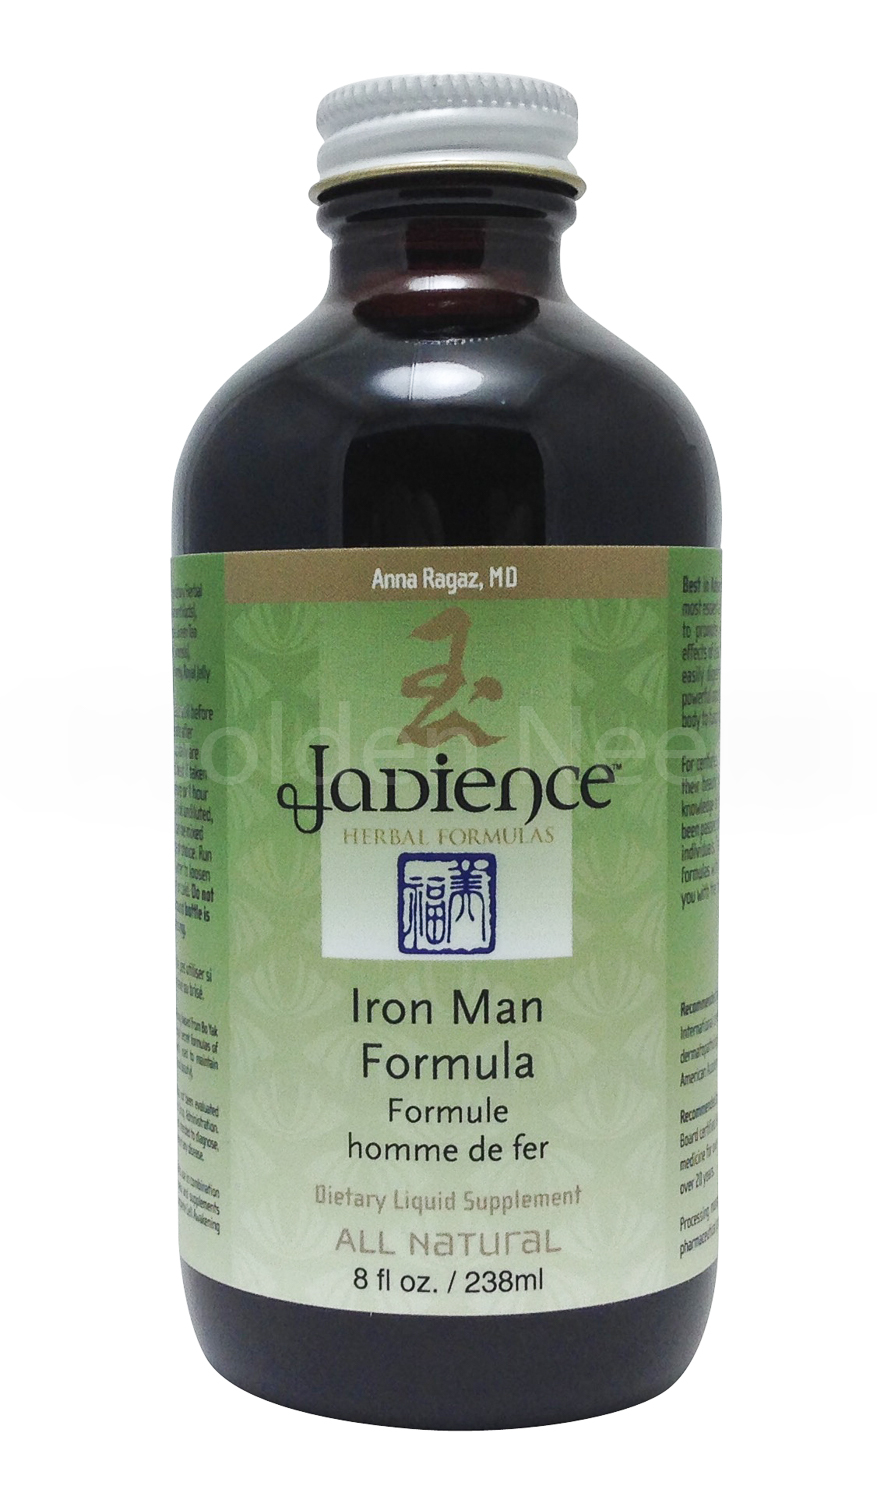 Iron Man Internal Liquid Formula, 8 oz